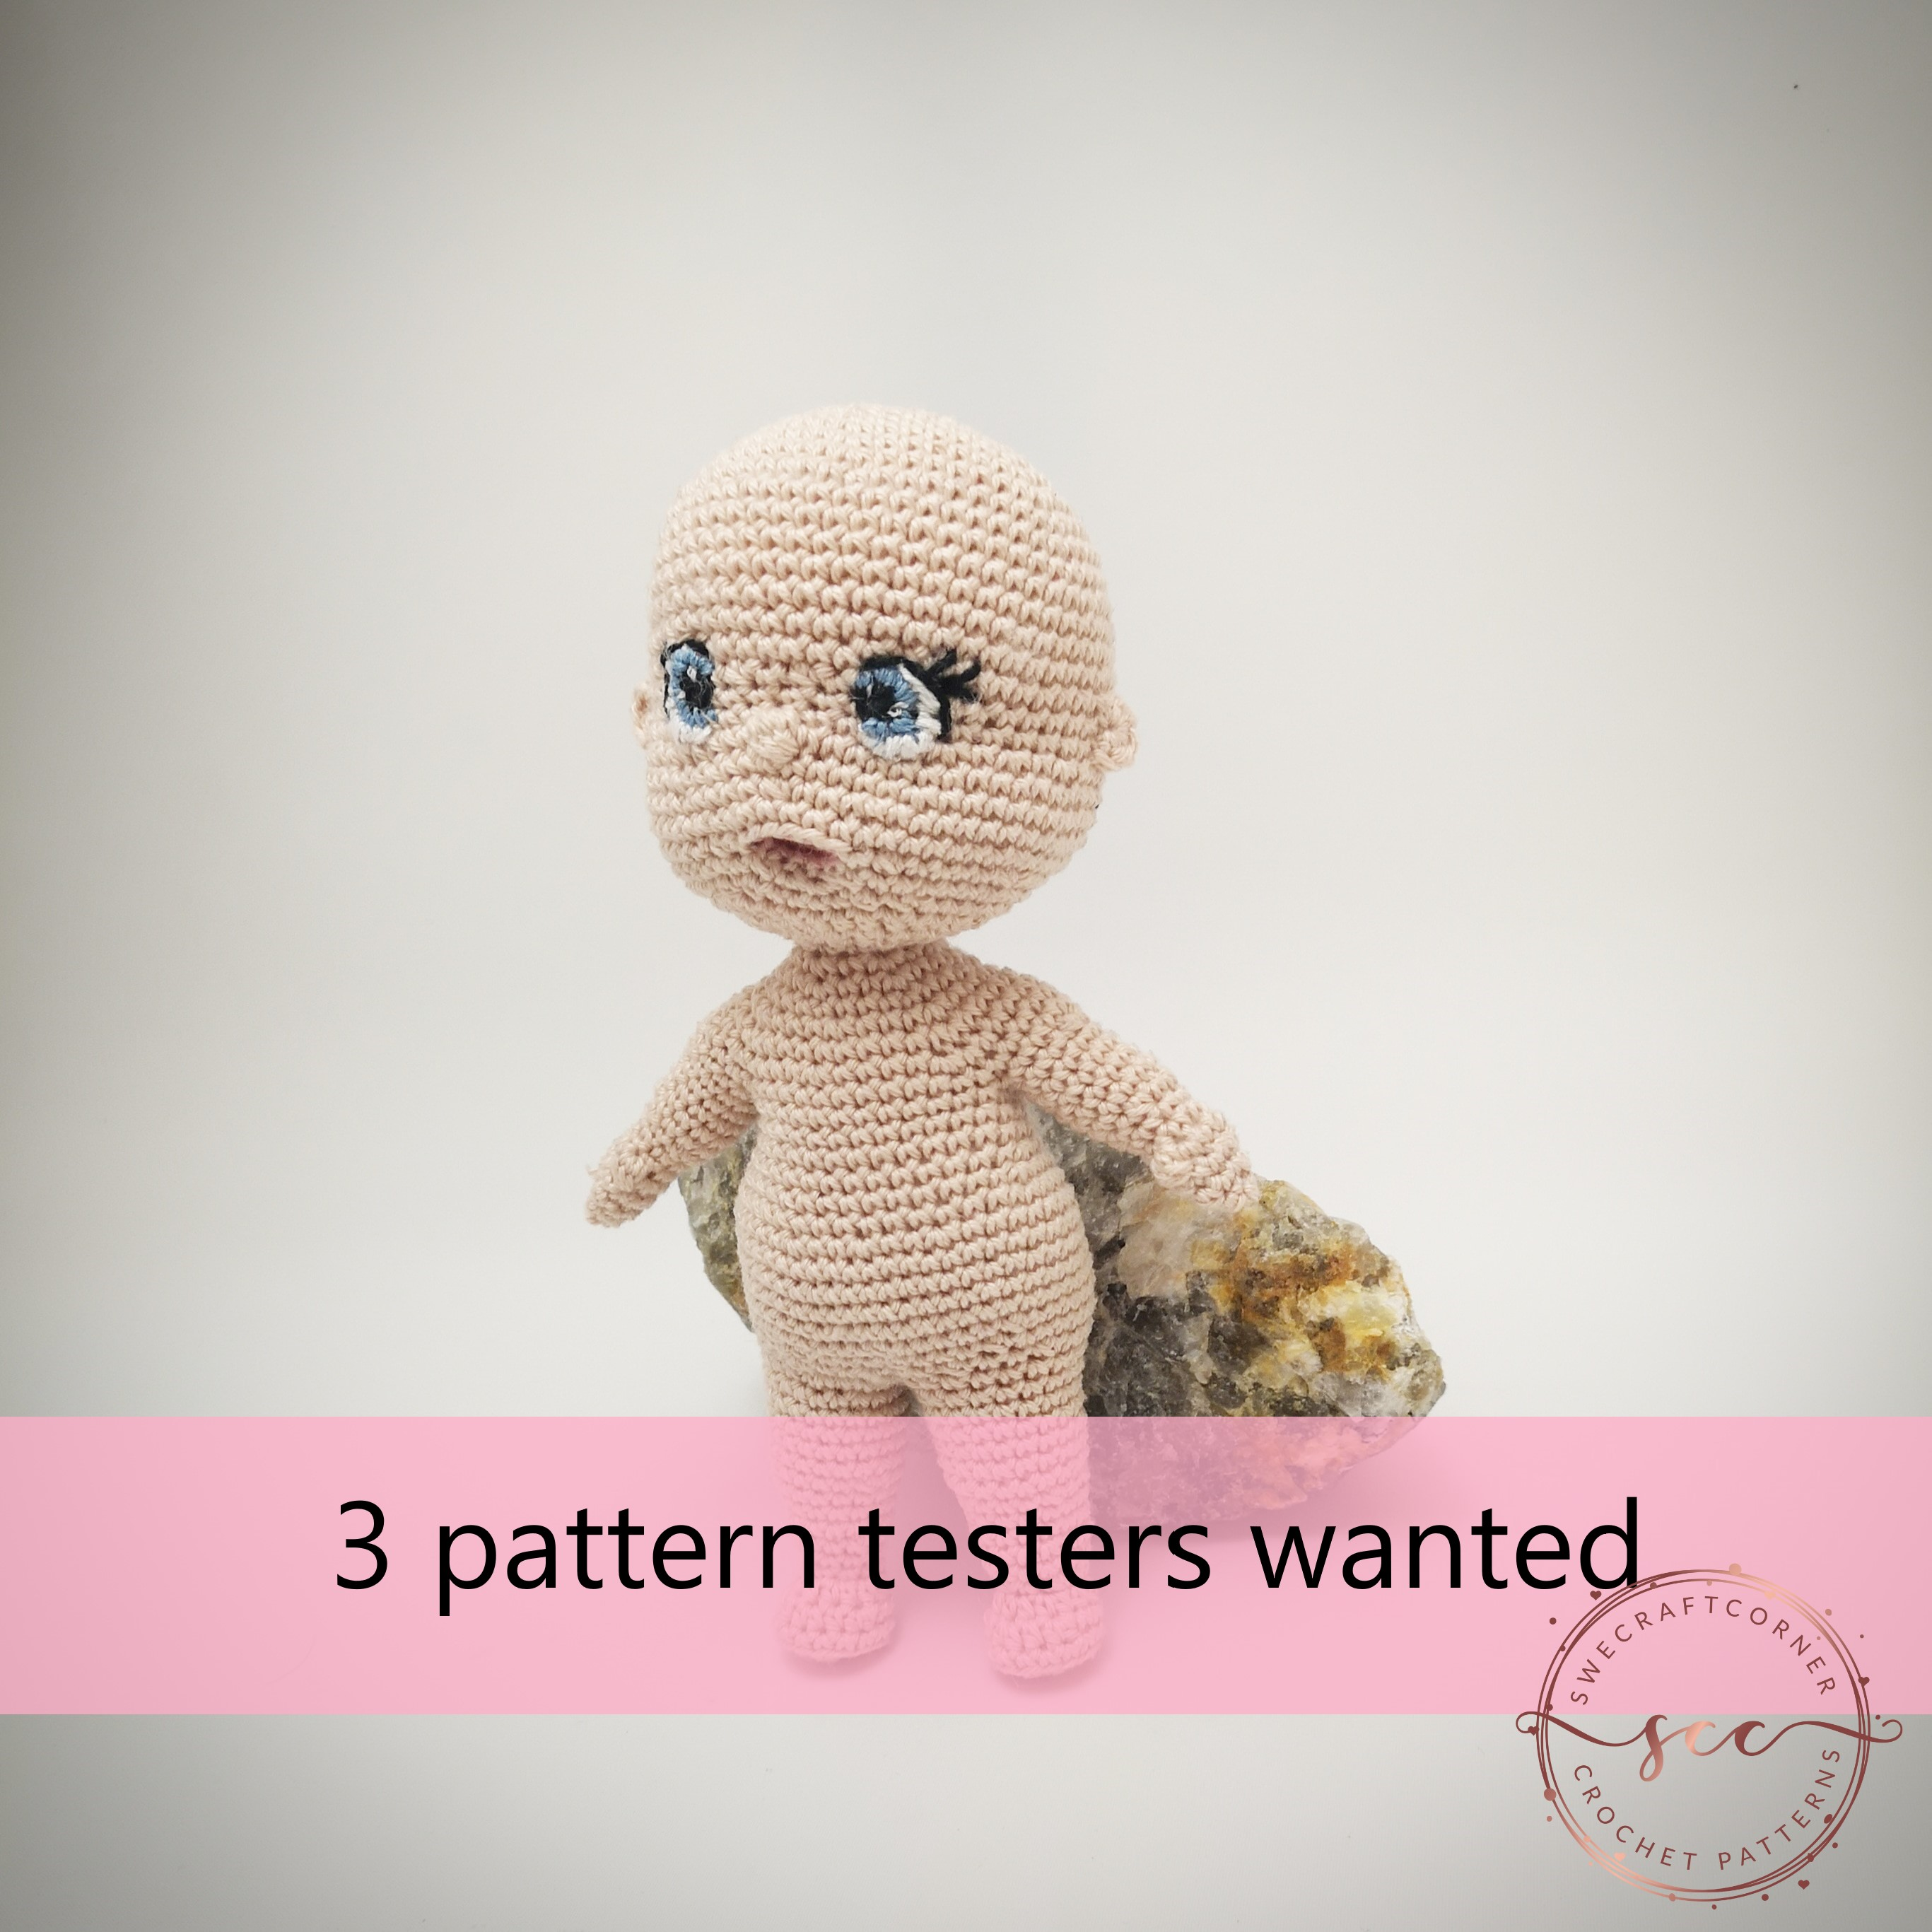 3 pattern testers wanted!